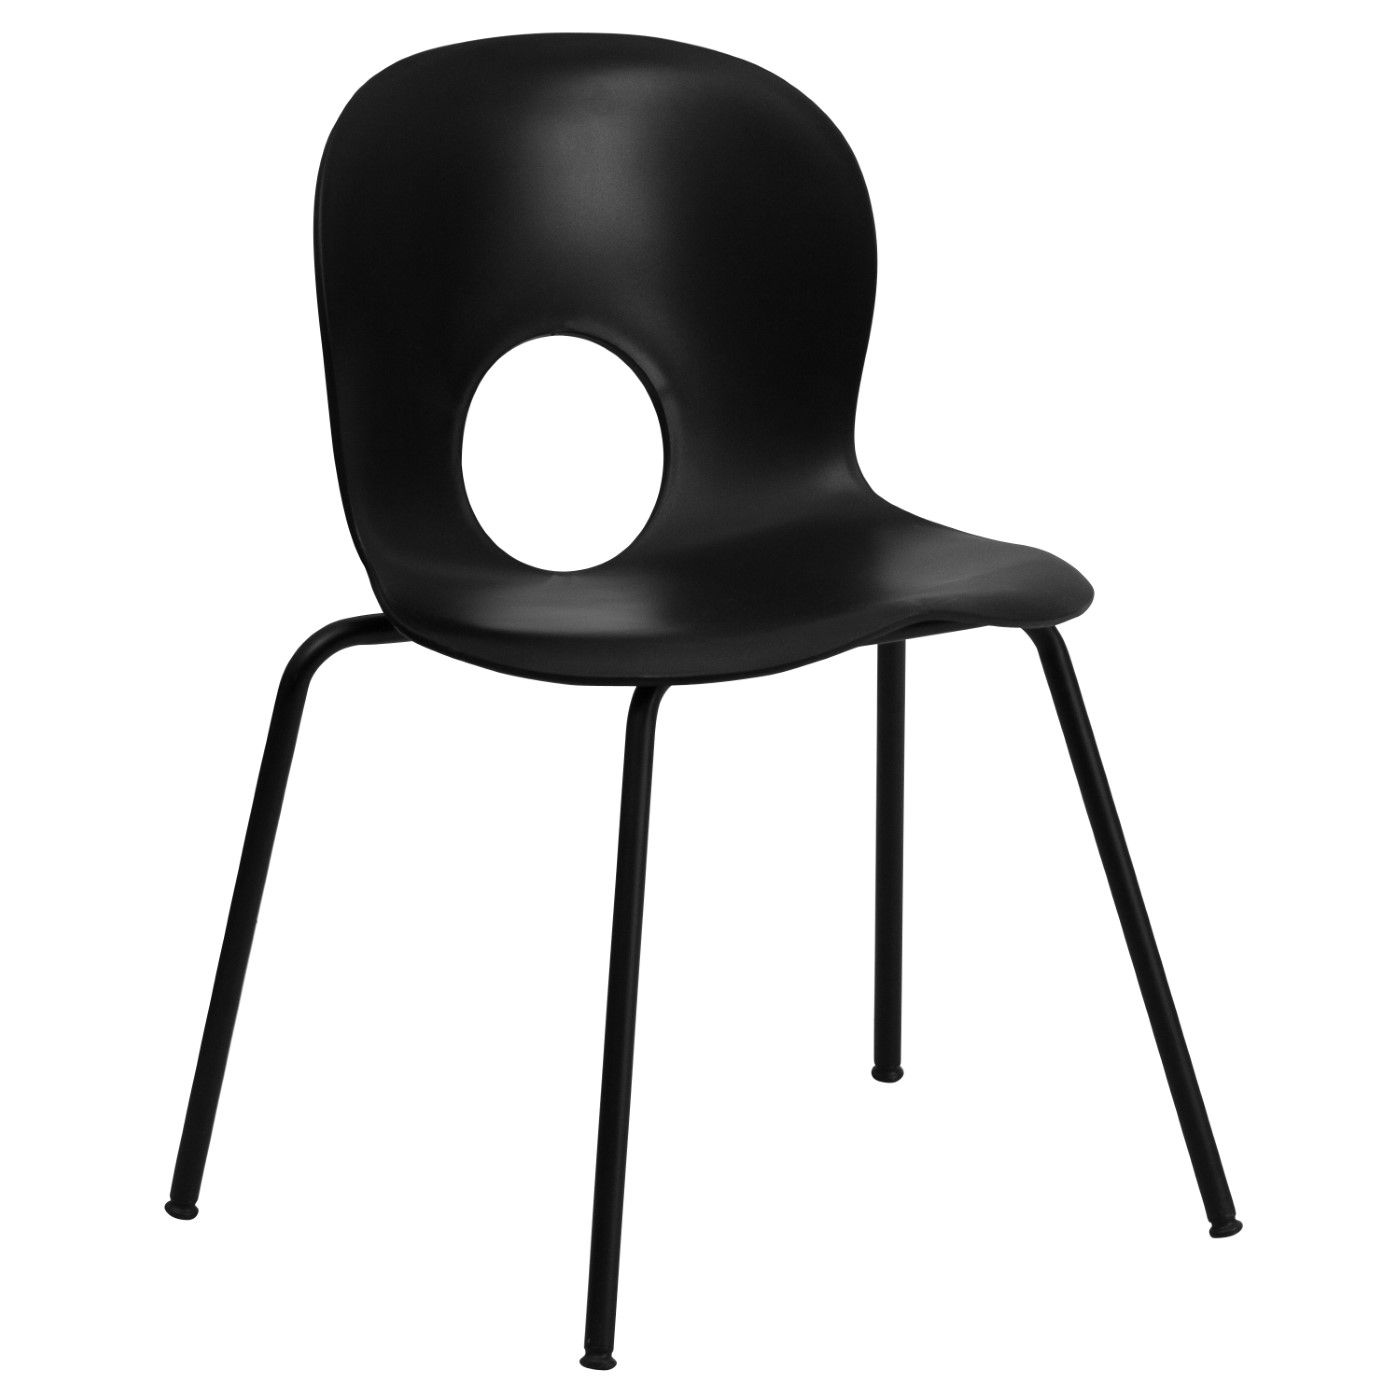 TOUGH ENOUGH Series 770 lb. Capacity Designer Black Plastic Stack Chair with Black Frame